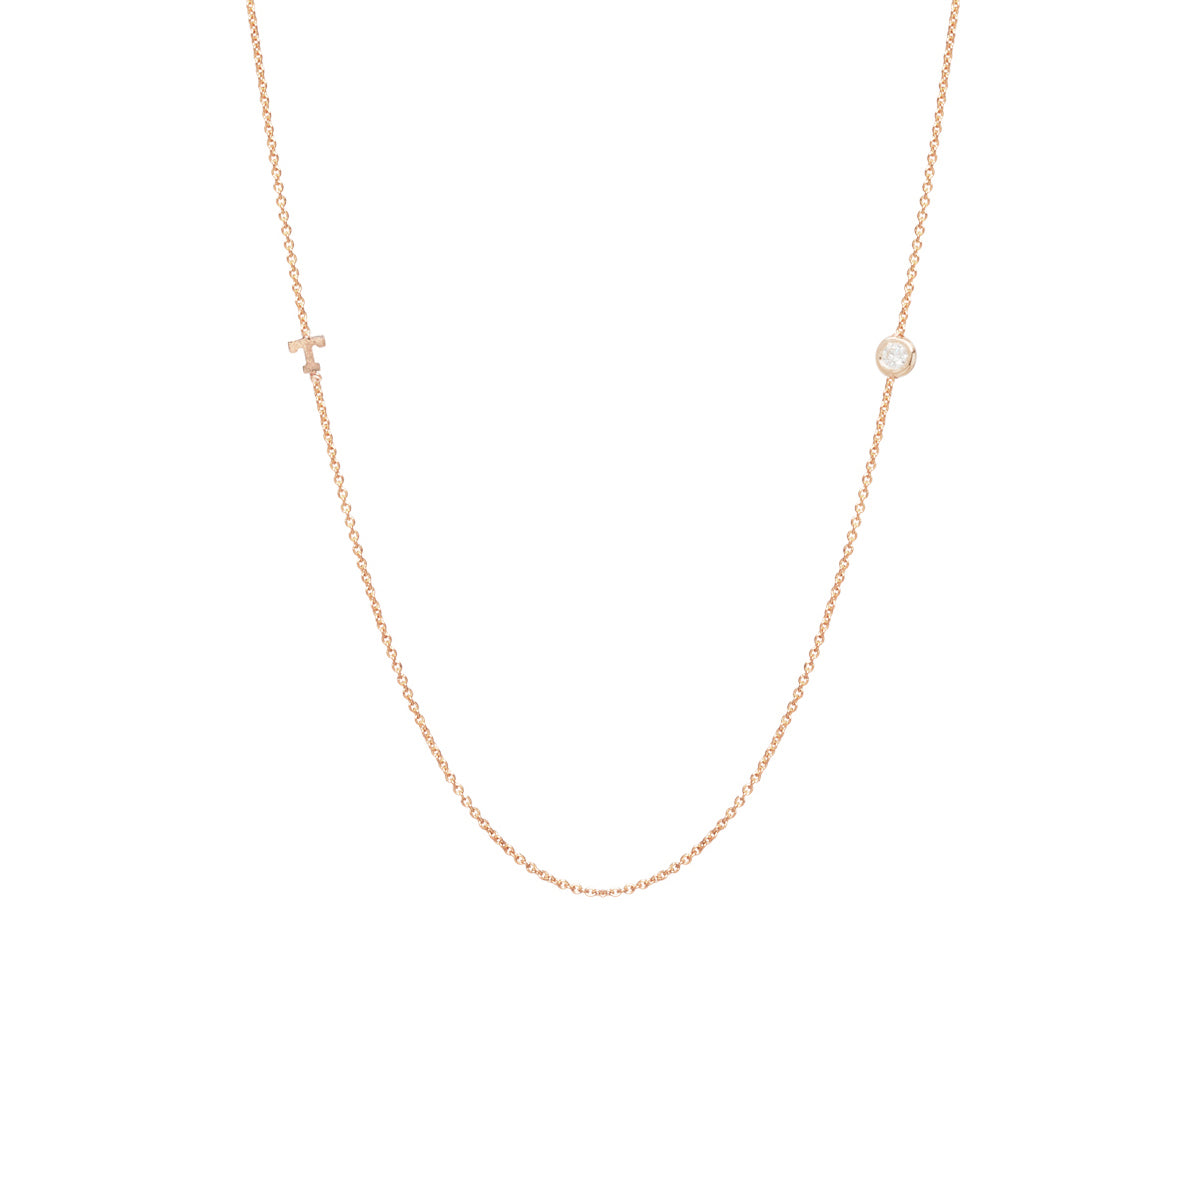 14k itty bitty letter necklace with floating diamond